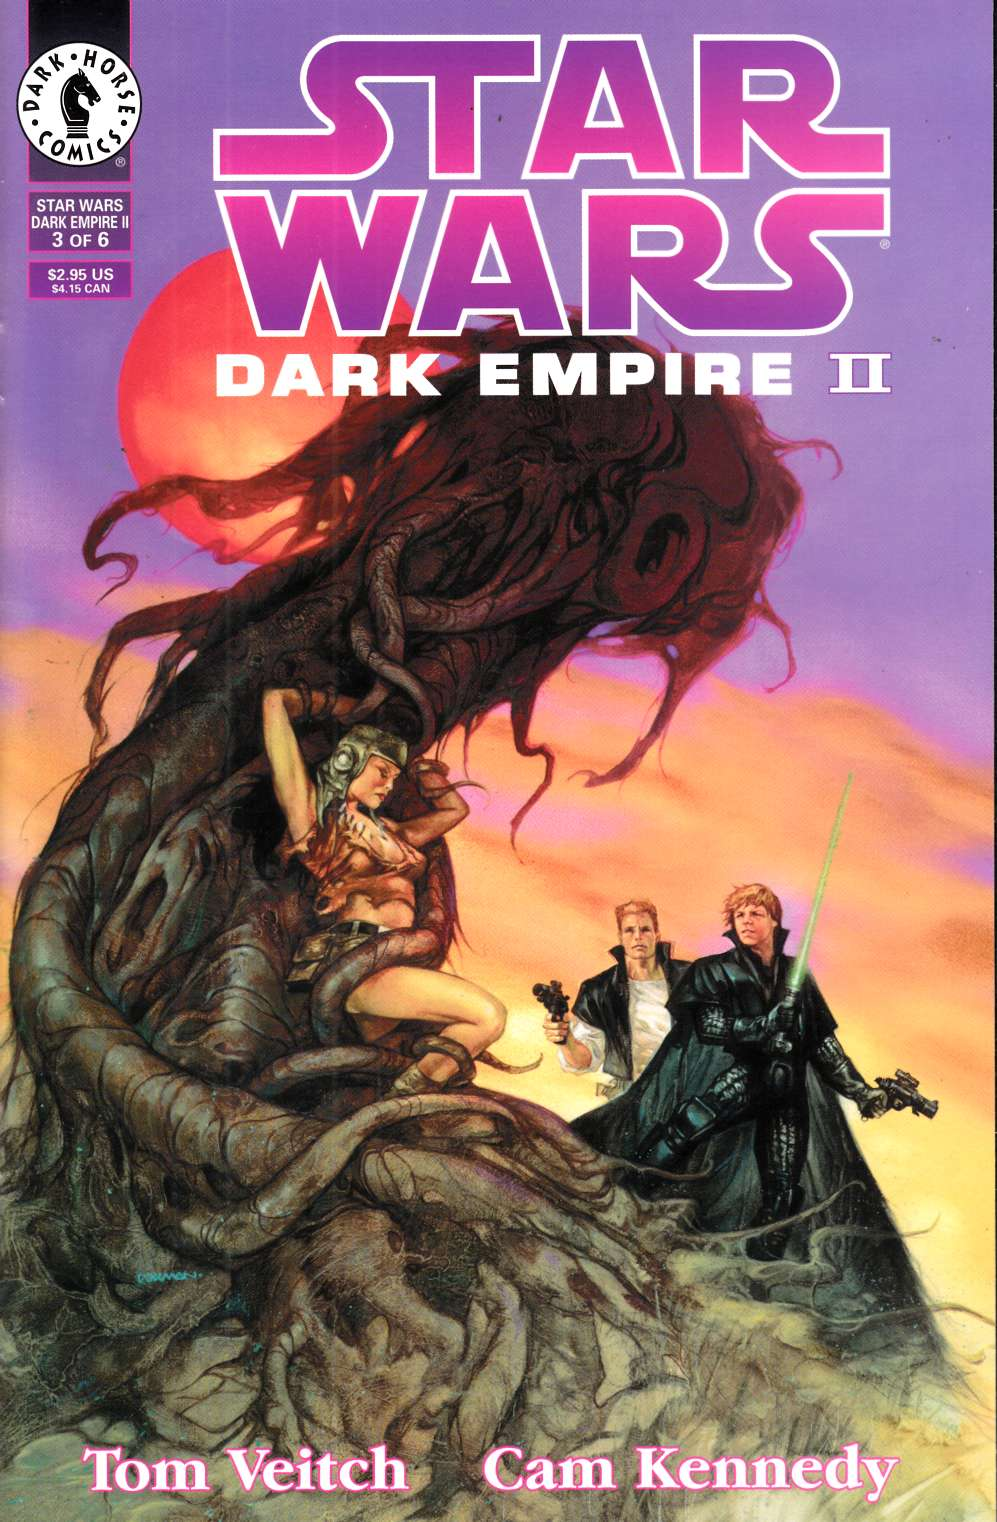 Star Wars Dark Empire II #3 Very Fine (8.0) [Dark Horse Comic] THUMBNAIL